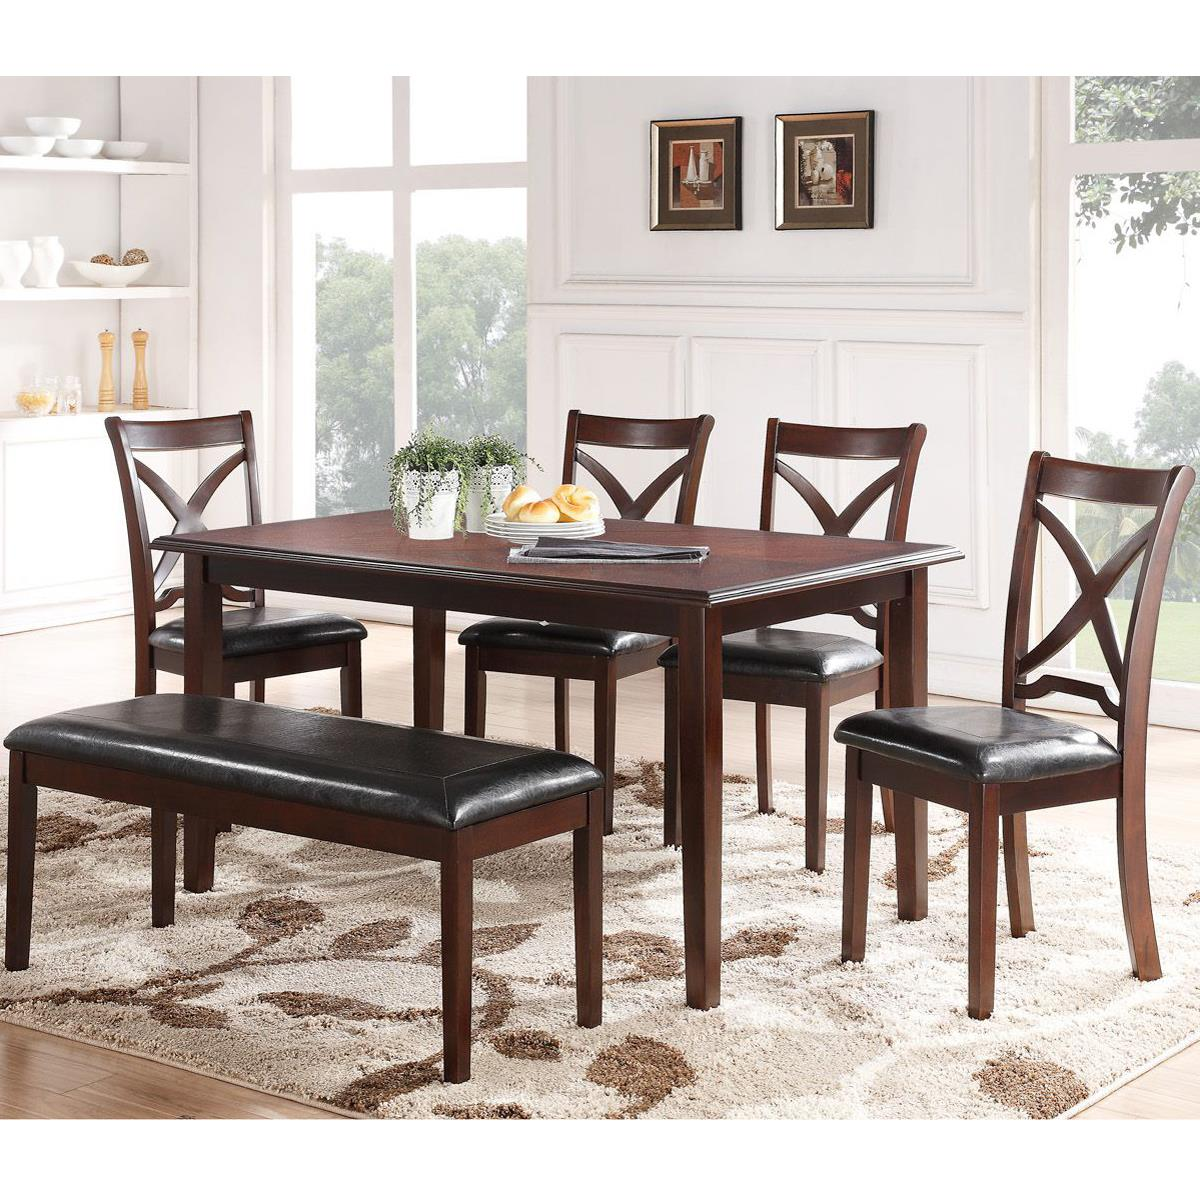 6PC Dining Table and Chair set with a Bench